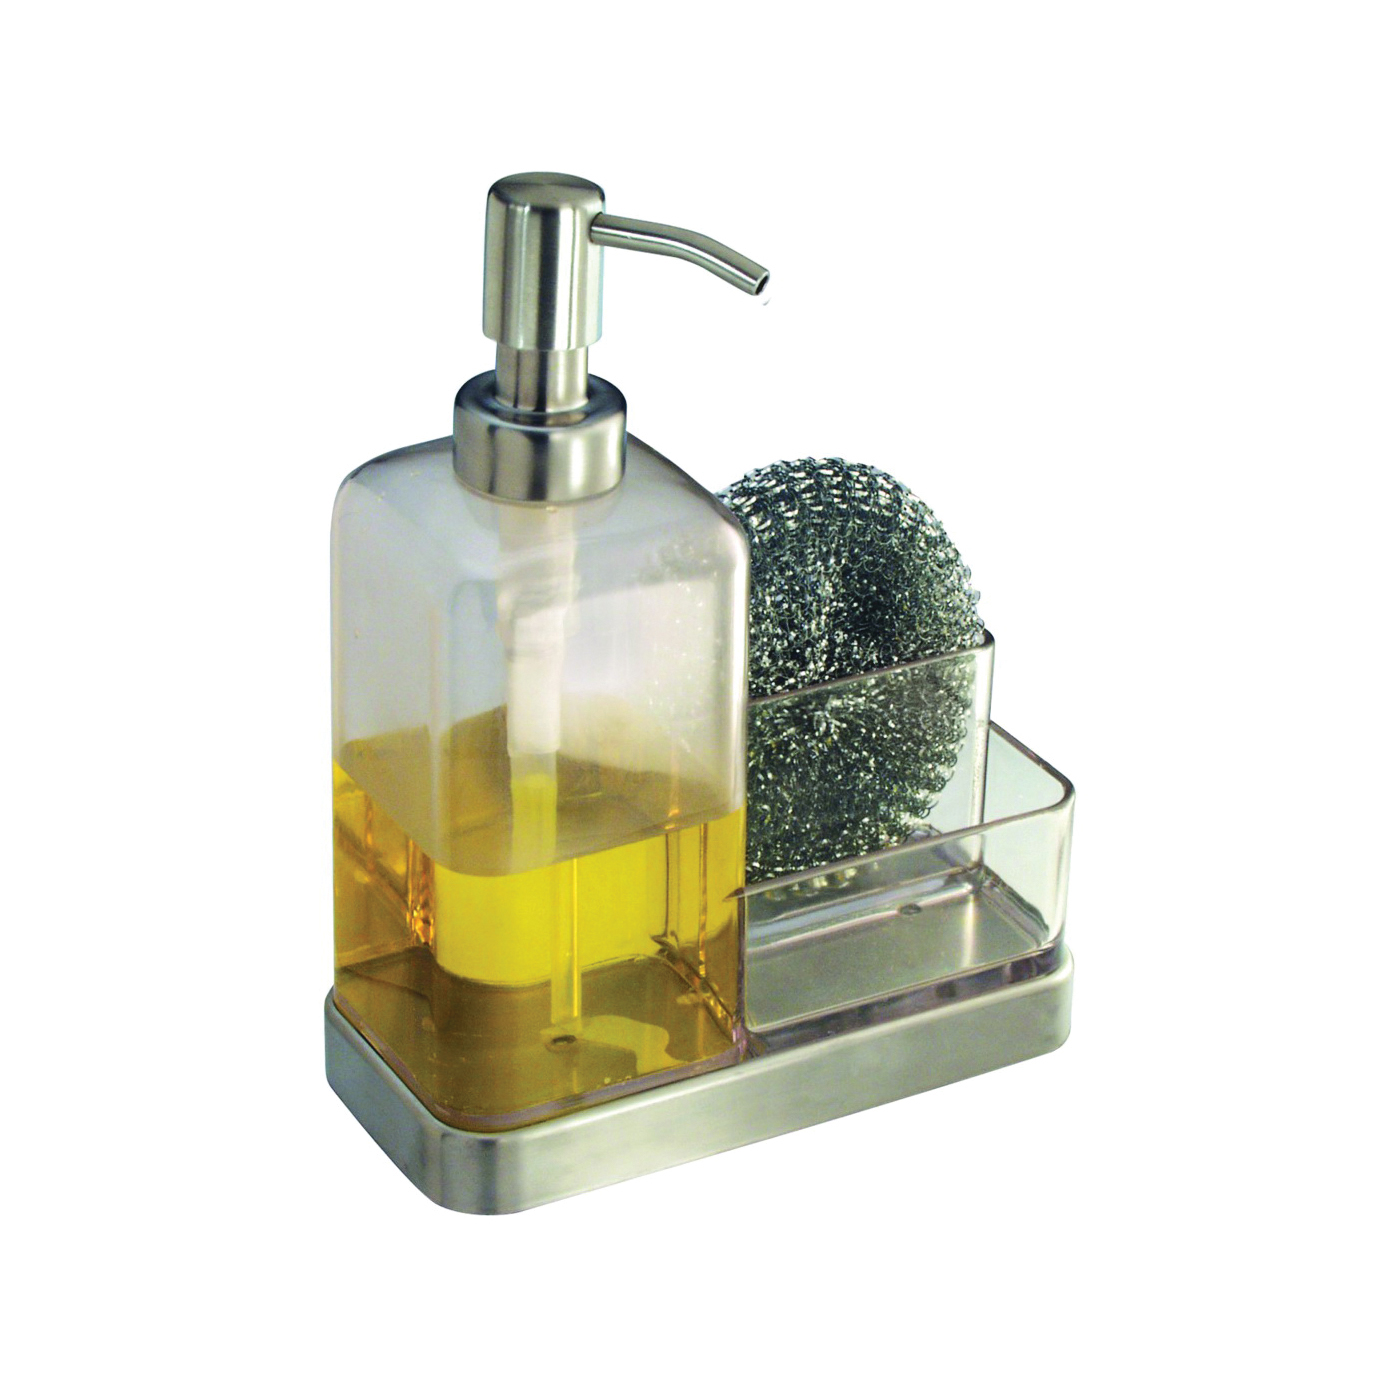 Picture of iDESIGN 67080 Soap and Sponge Caddy, Stainless Steel, Clear